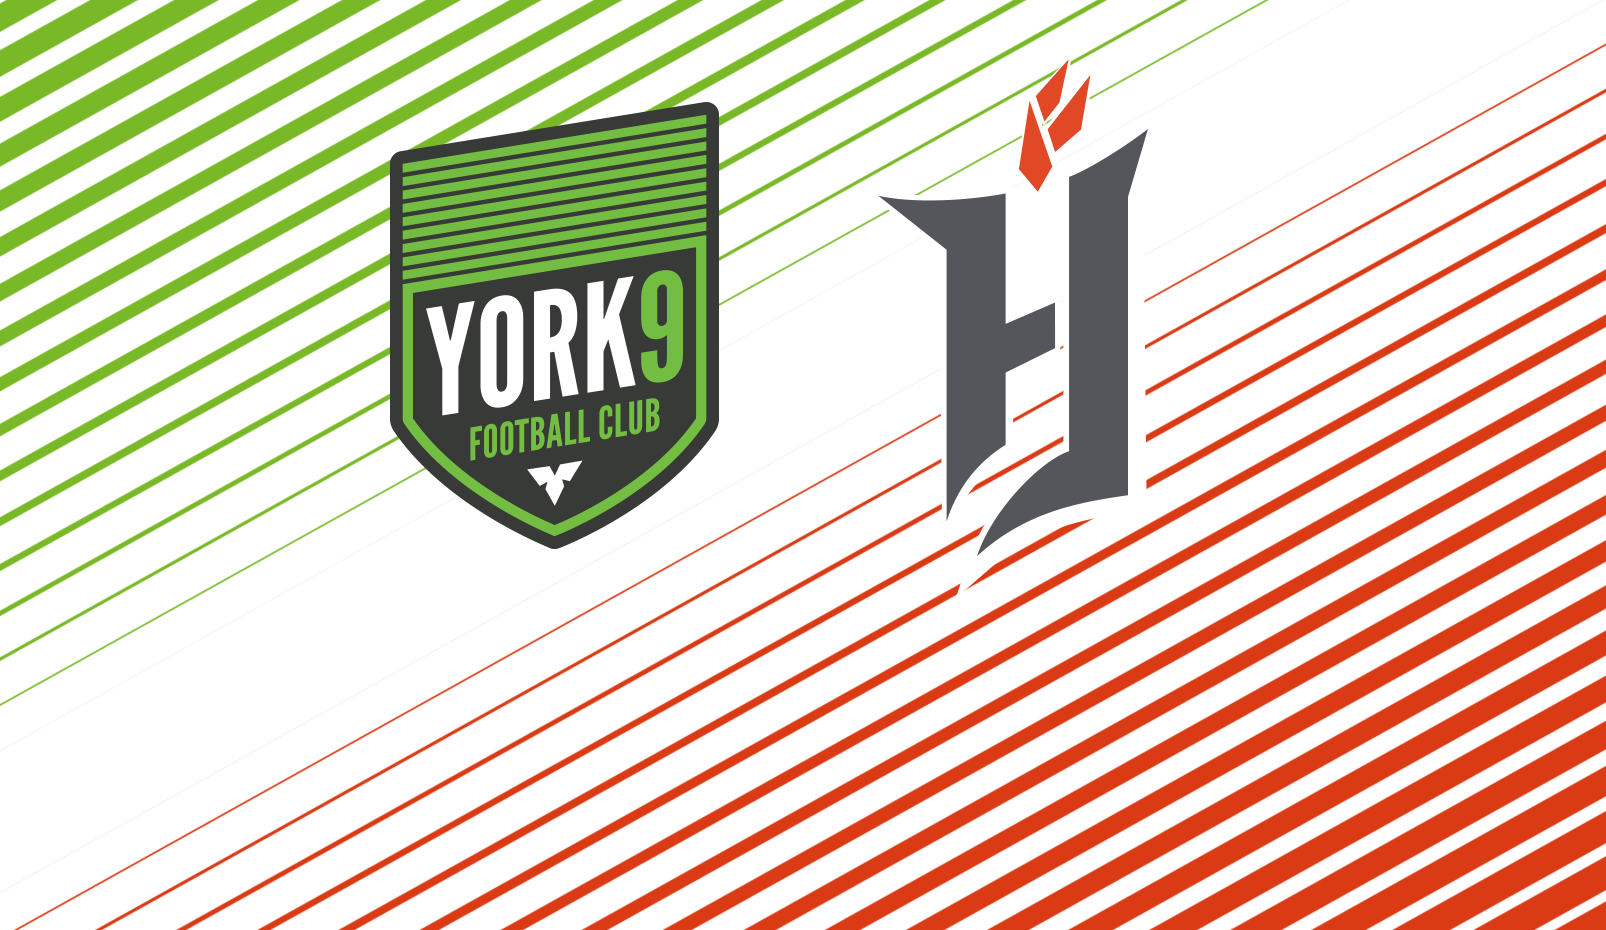 PREVIEW: York9 FC vs. Forge FC – Match #91